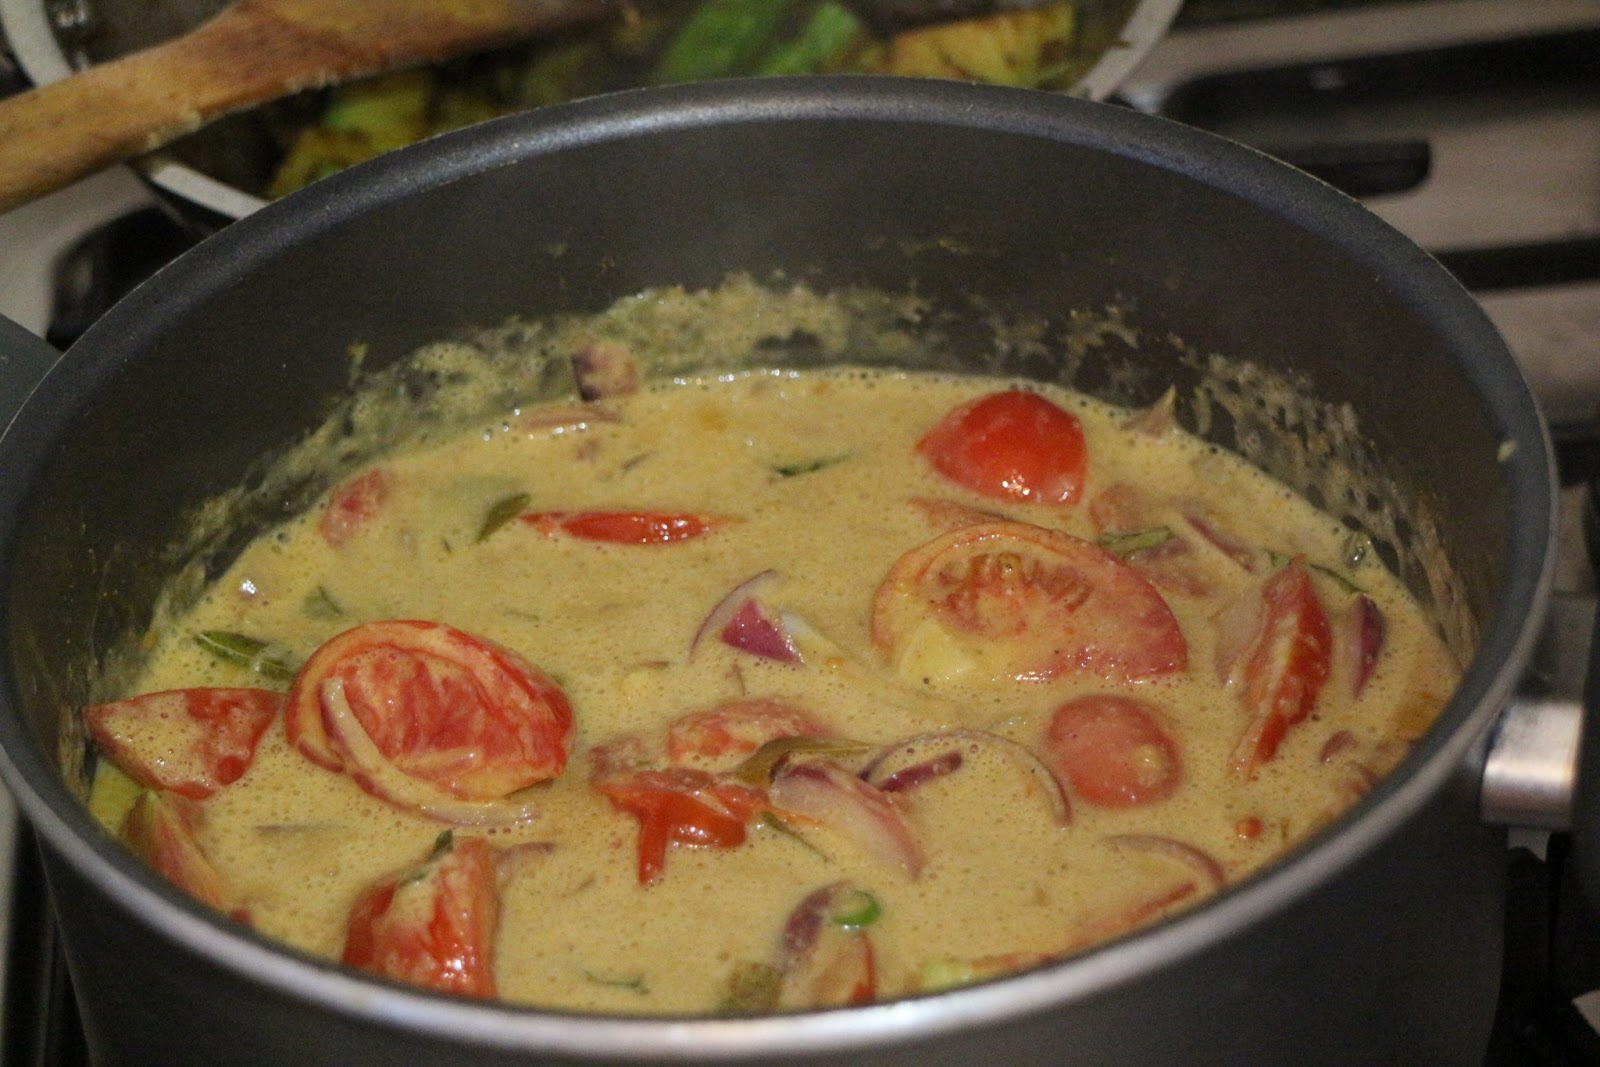 Home cooking sri lankan rice and curry 6 dishes plus rice more sri lankan by cooking the tomatoes in a coconut milk curry sauce with onions and curry leaves the acidity of the tomatoes is great against the forumfinder Choice Image